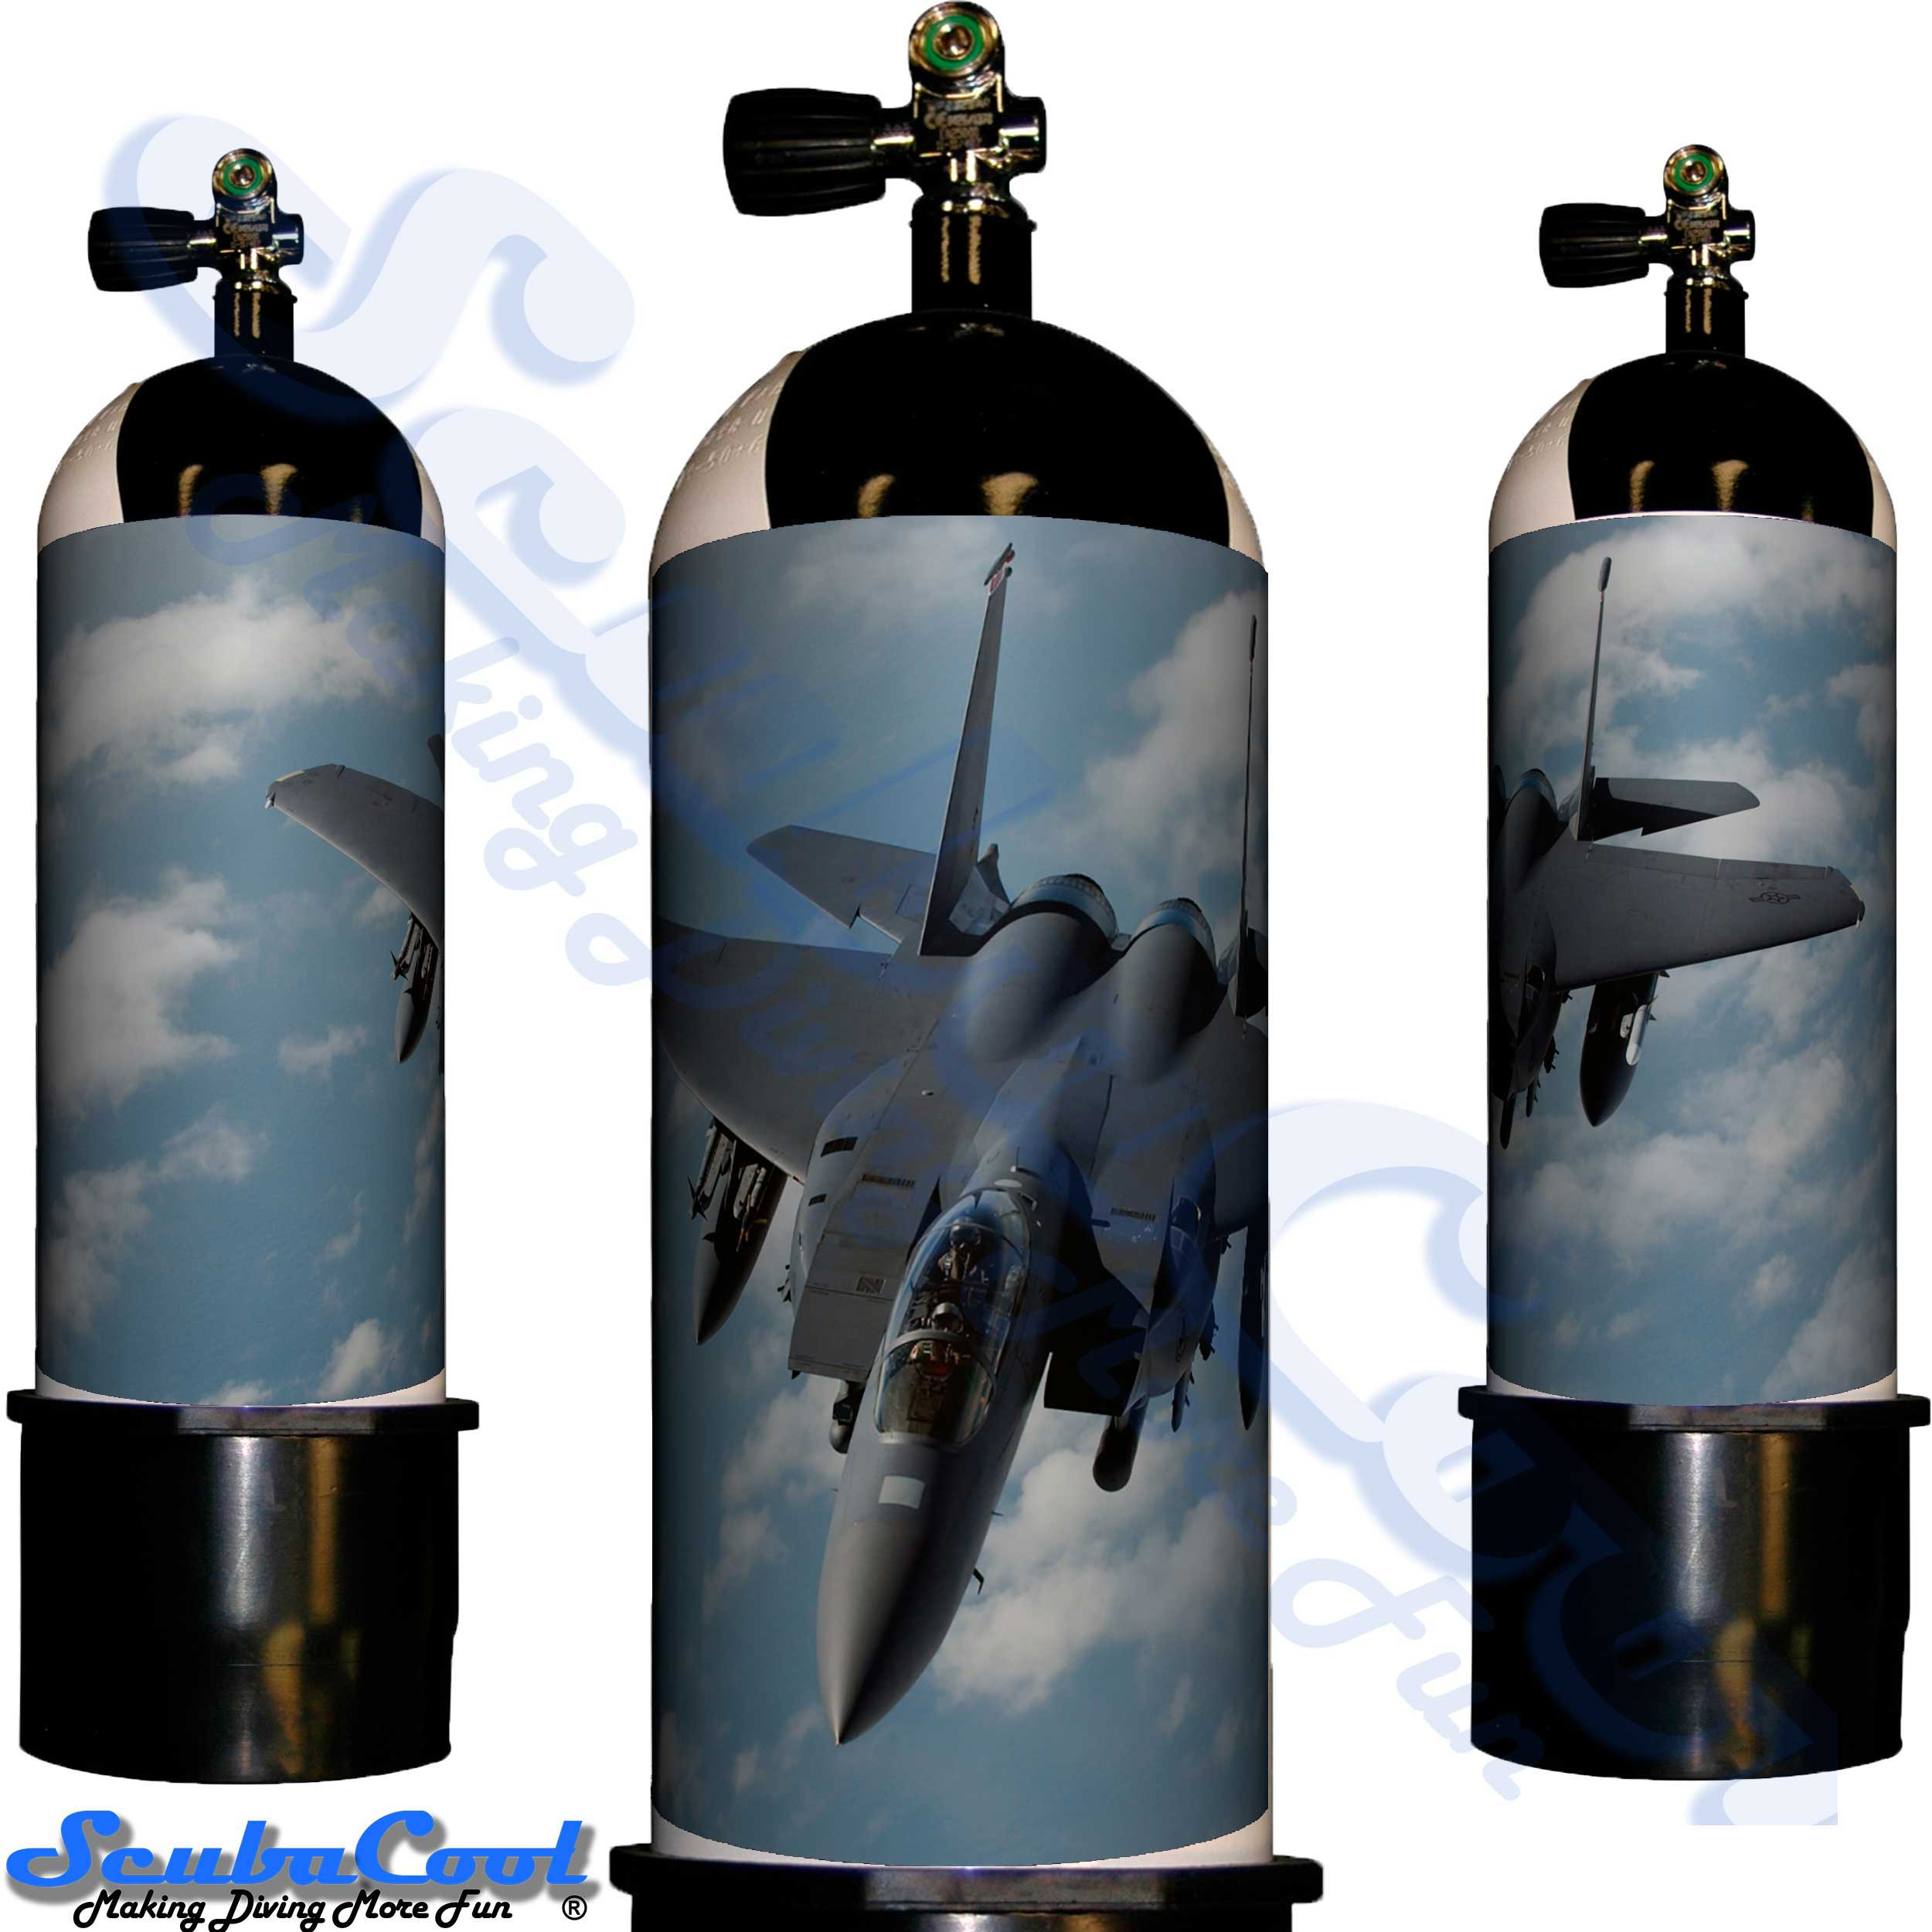 2212 Scubacool Scuba Dive Gas Cylinder Tank Cover NOT neoprene